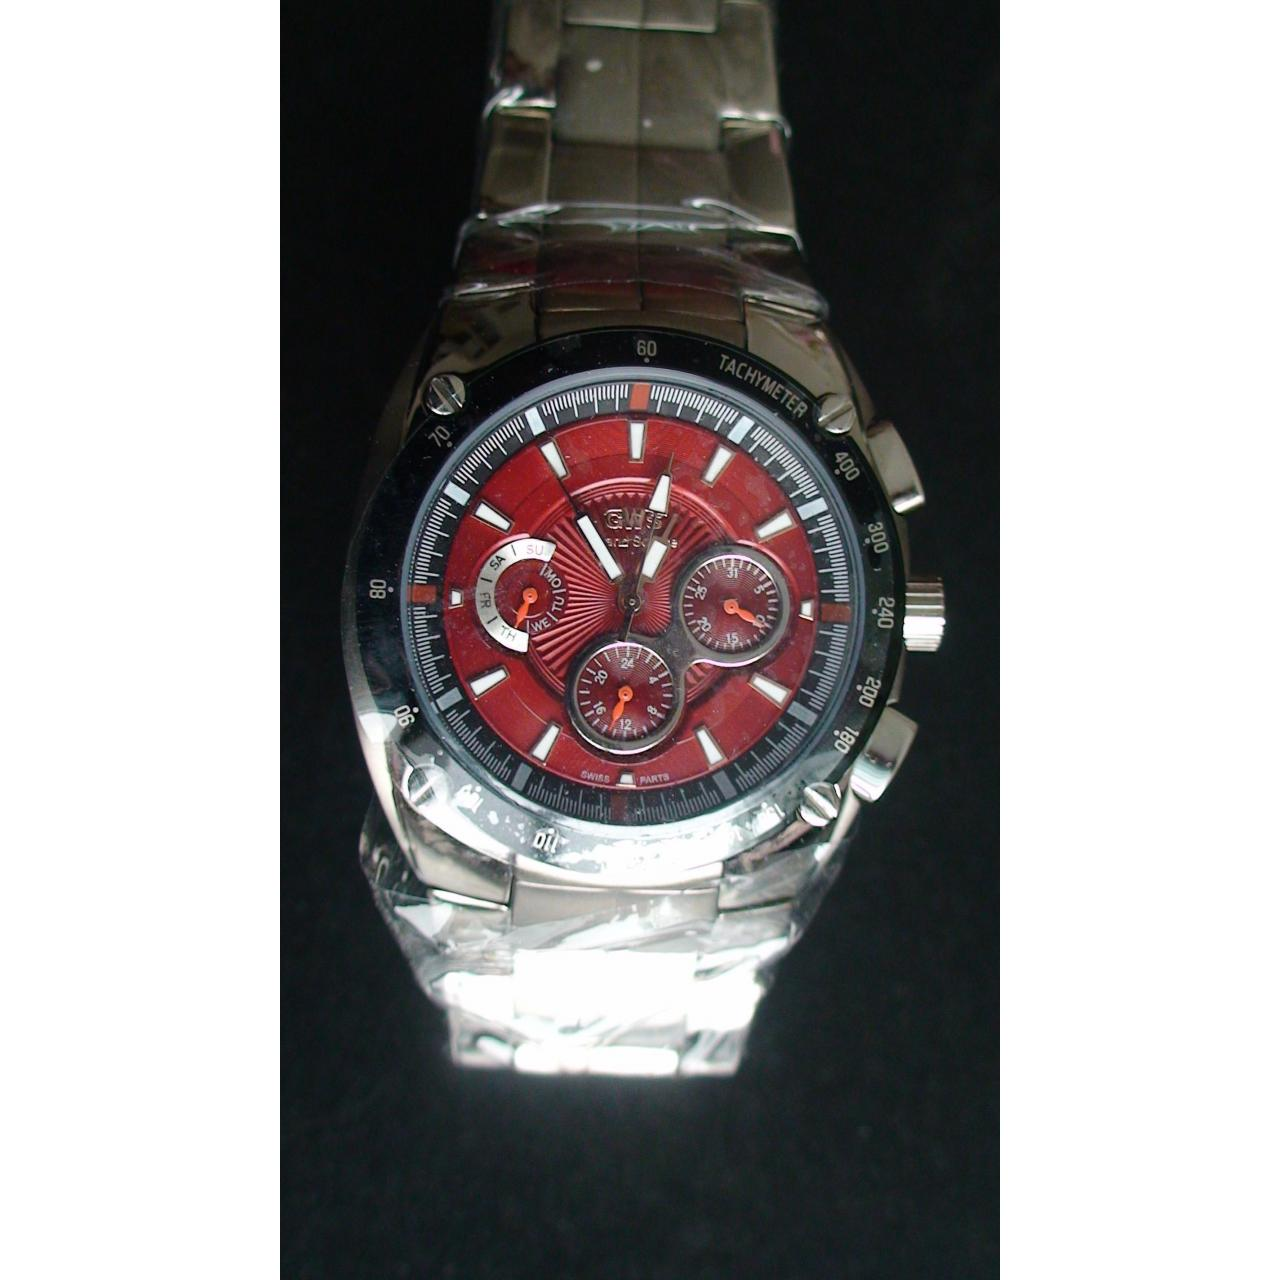 HY840 Titanium watch in red 412